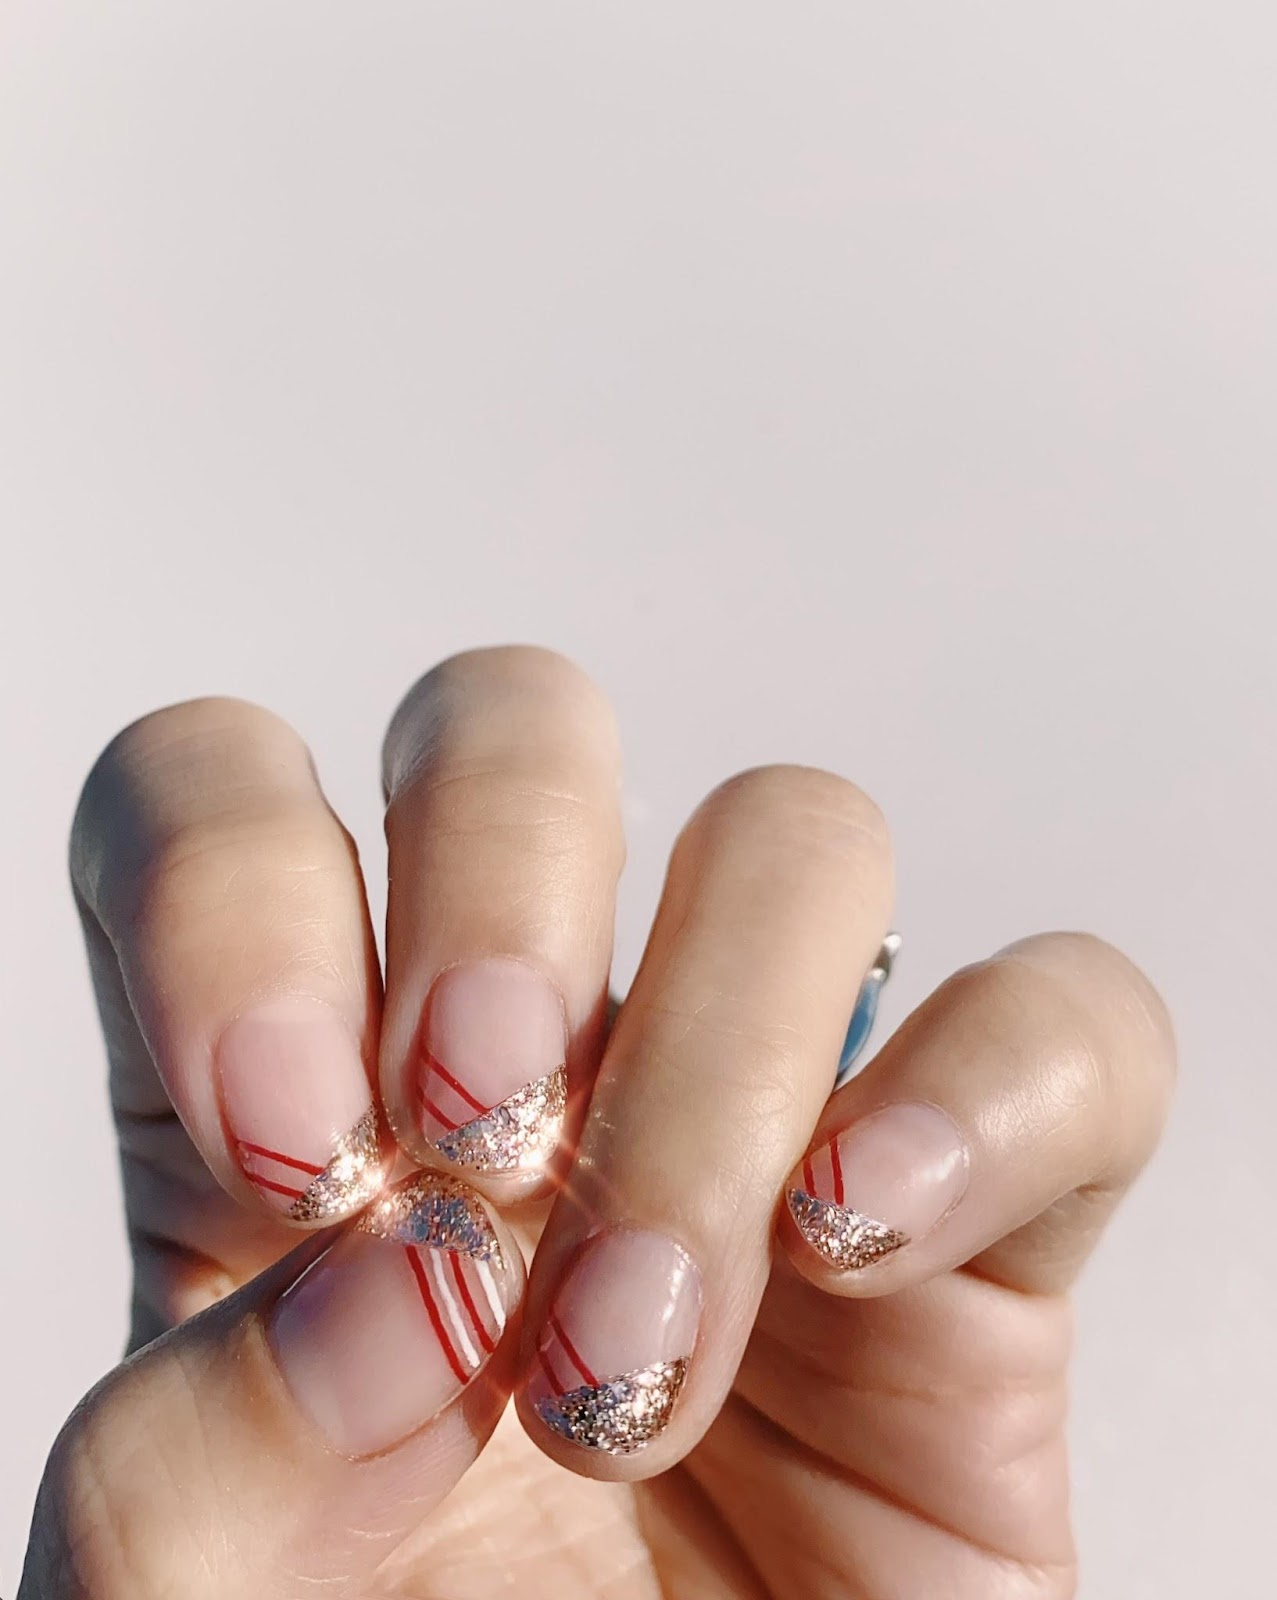 Clear nails with thick gold glitter on half of the tip & thin red & white stripes on the other half